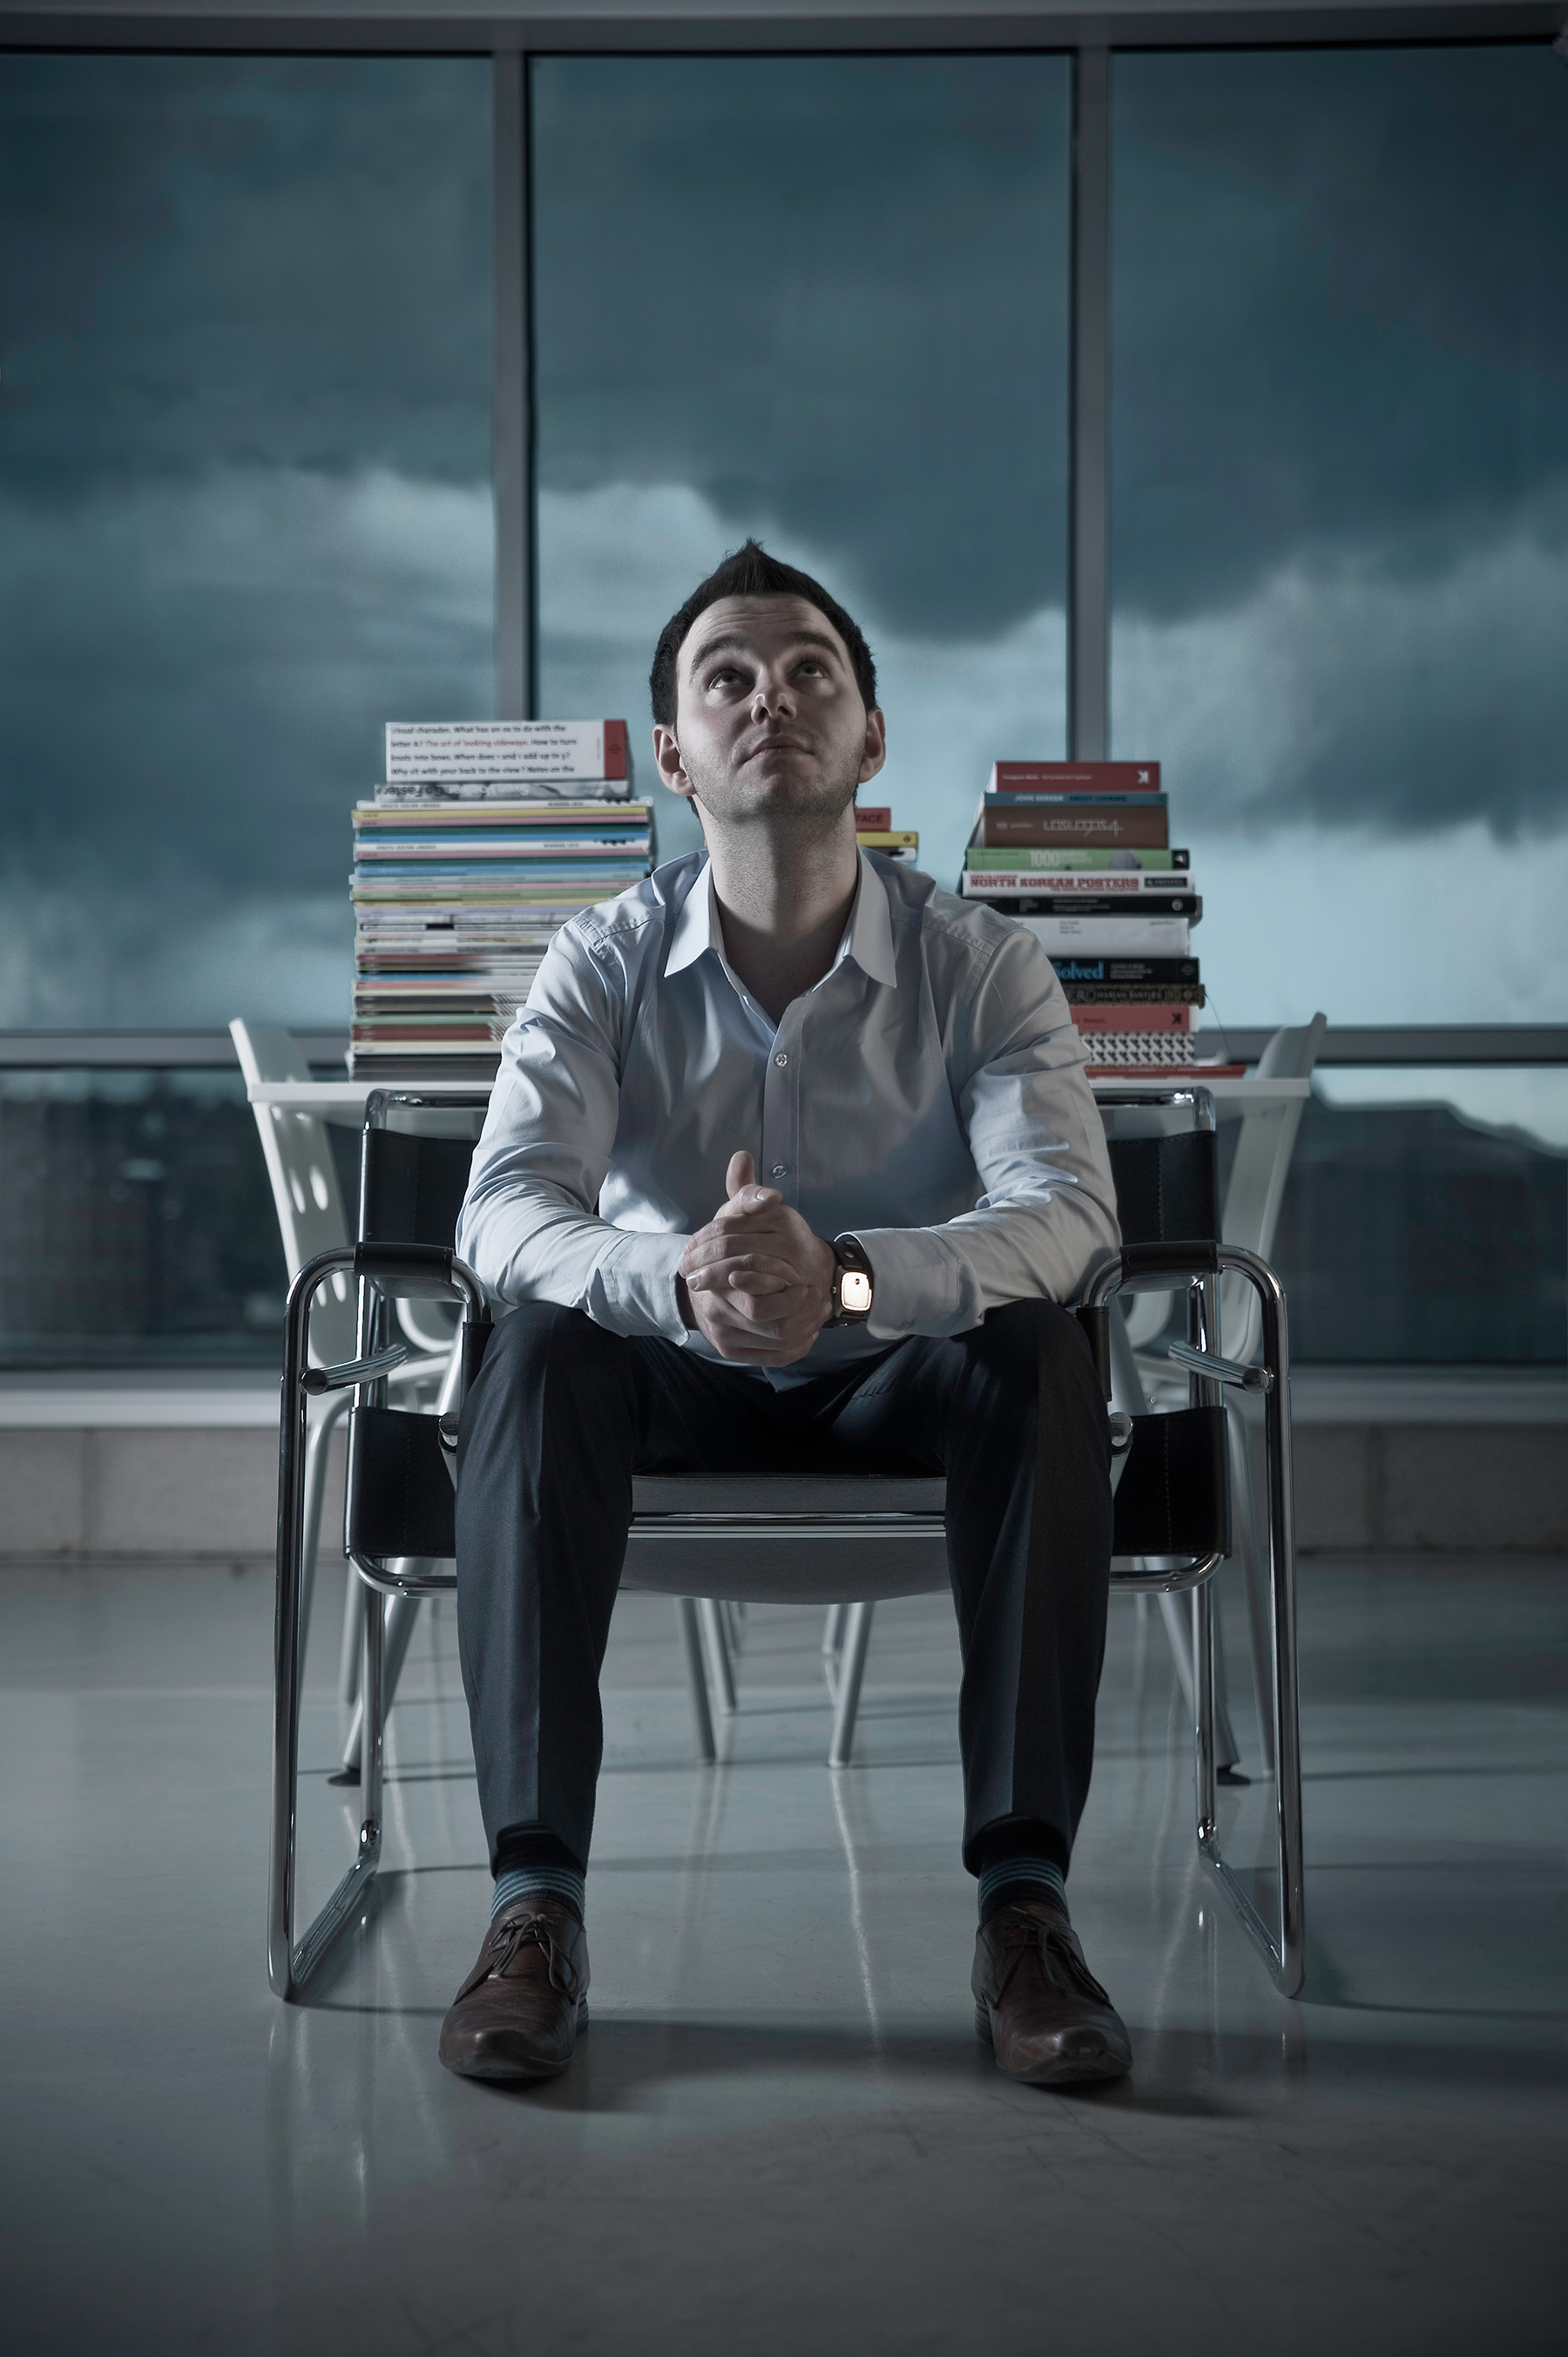 Moody image of young professional man in modern office with grey cloudy sky behind